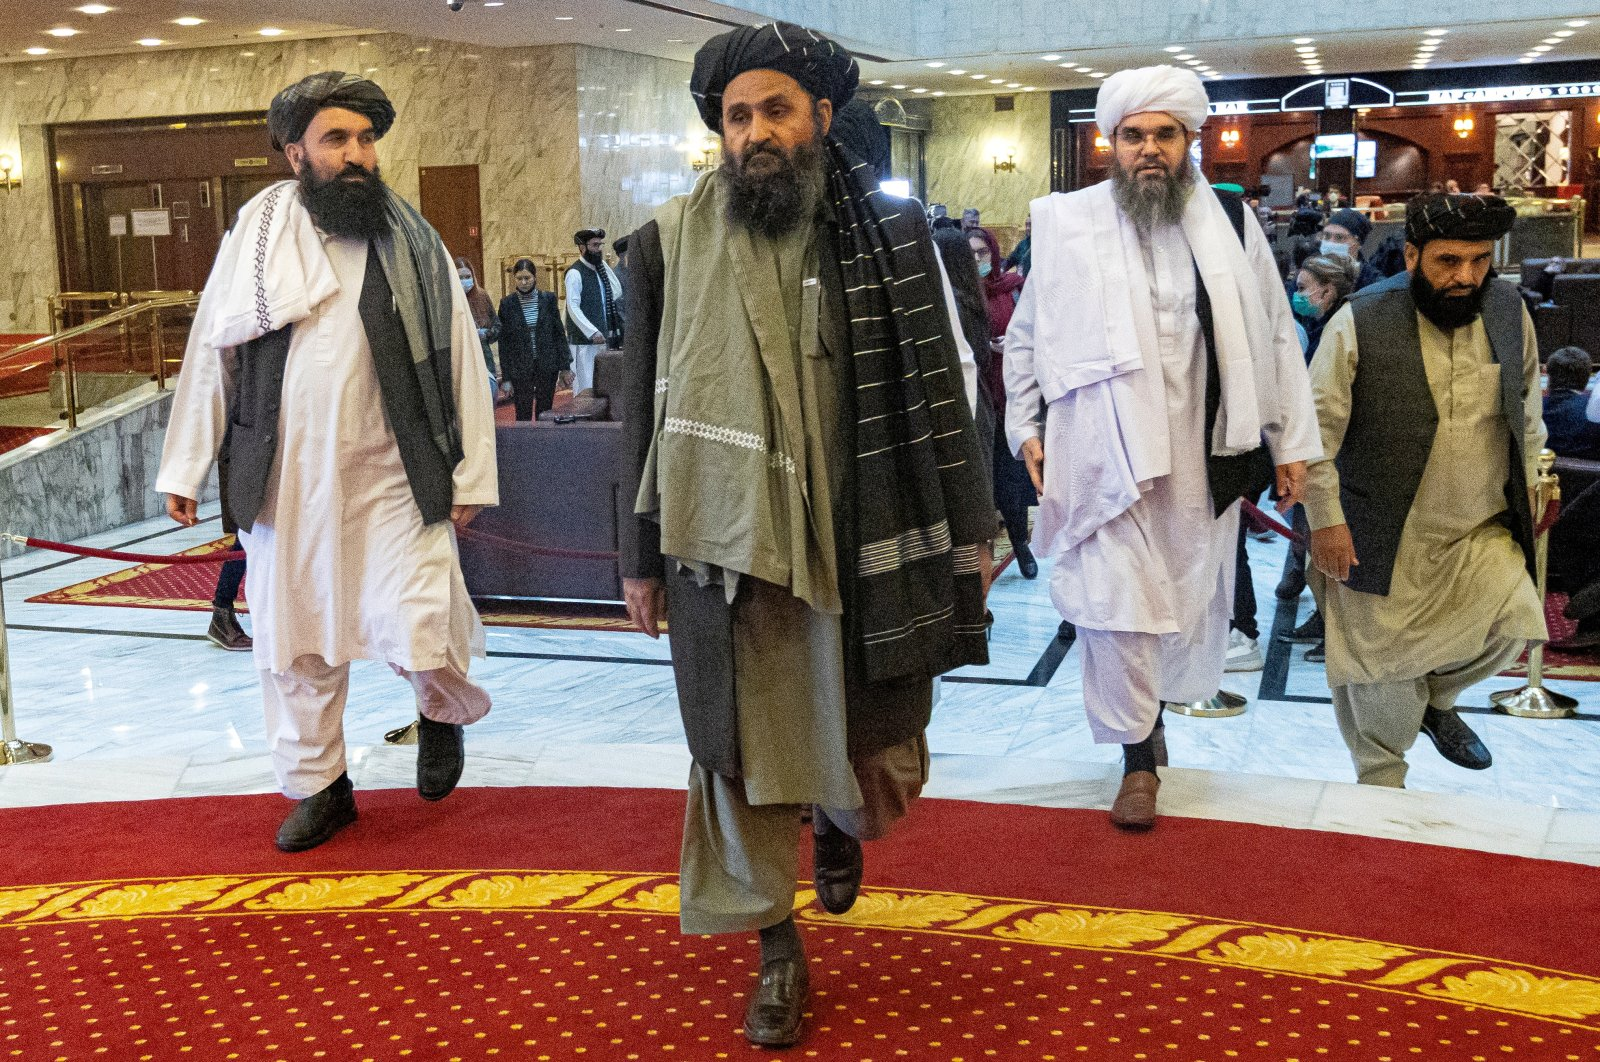 Mullah Abdul Ghani Baradar, the Taliban's deputy leader and negotiator, and other delegation members attend the Afghan peace conference in Moscow, Russia, March 18, 2021. (REUTERS/File Photo)